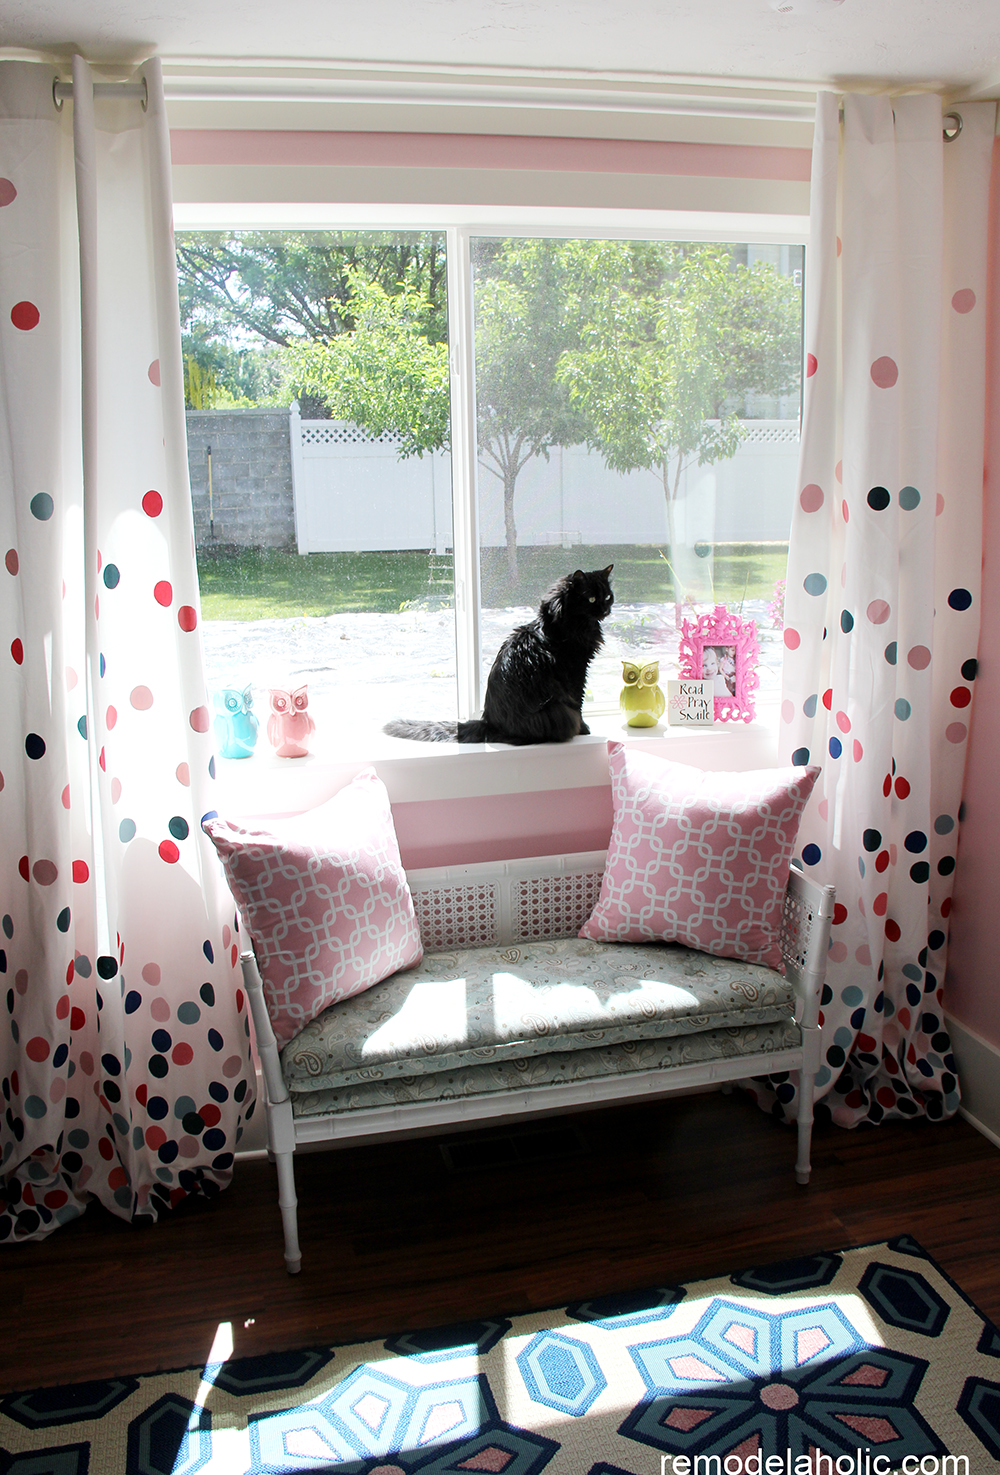 Superior Girls Pink And Navy Bedroom Decorations (14)